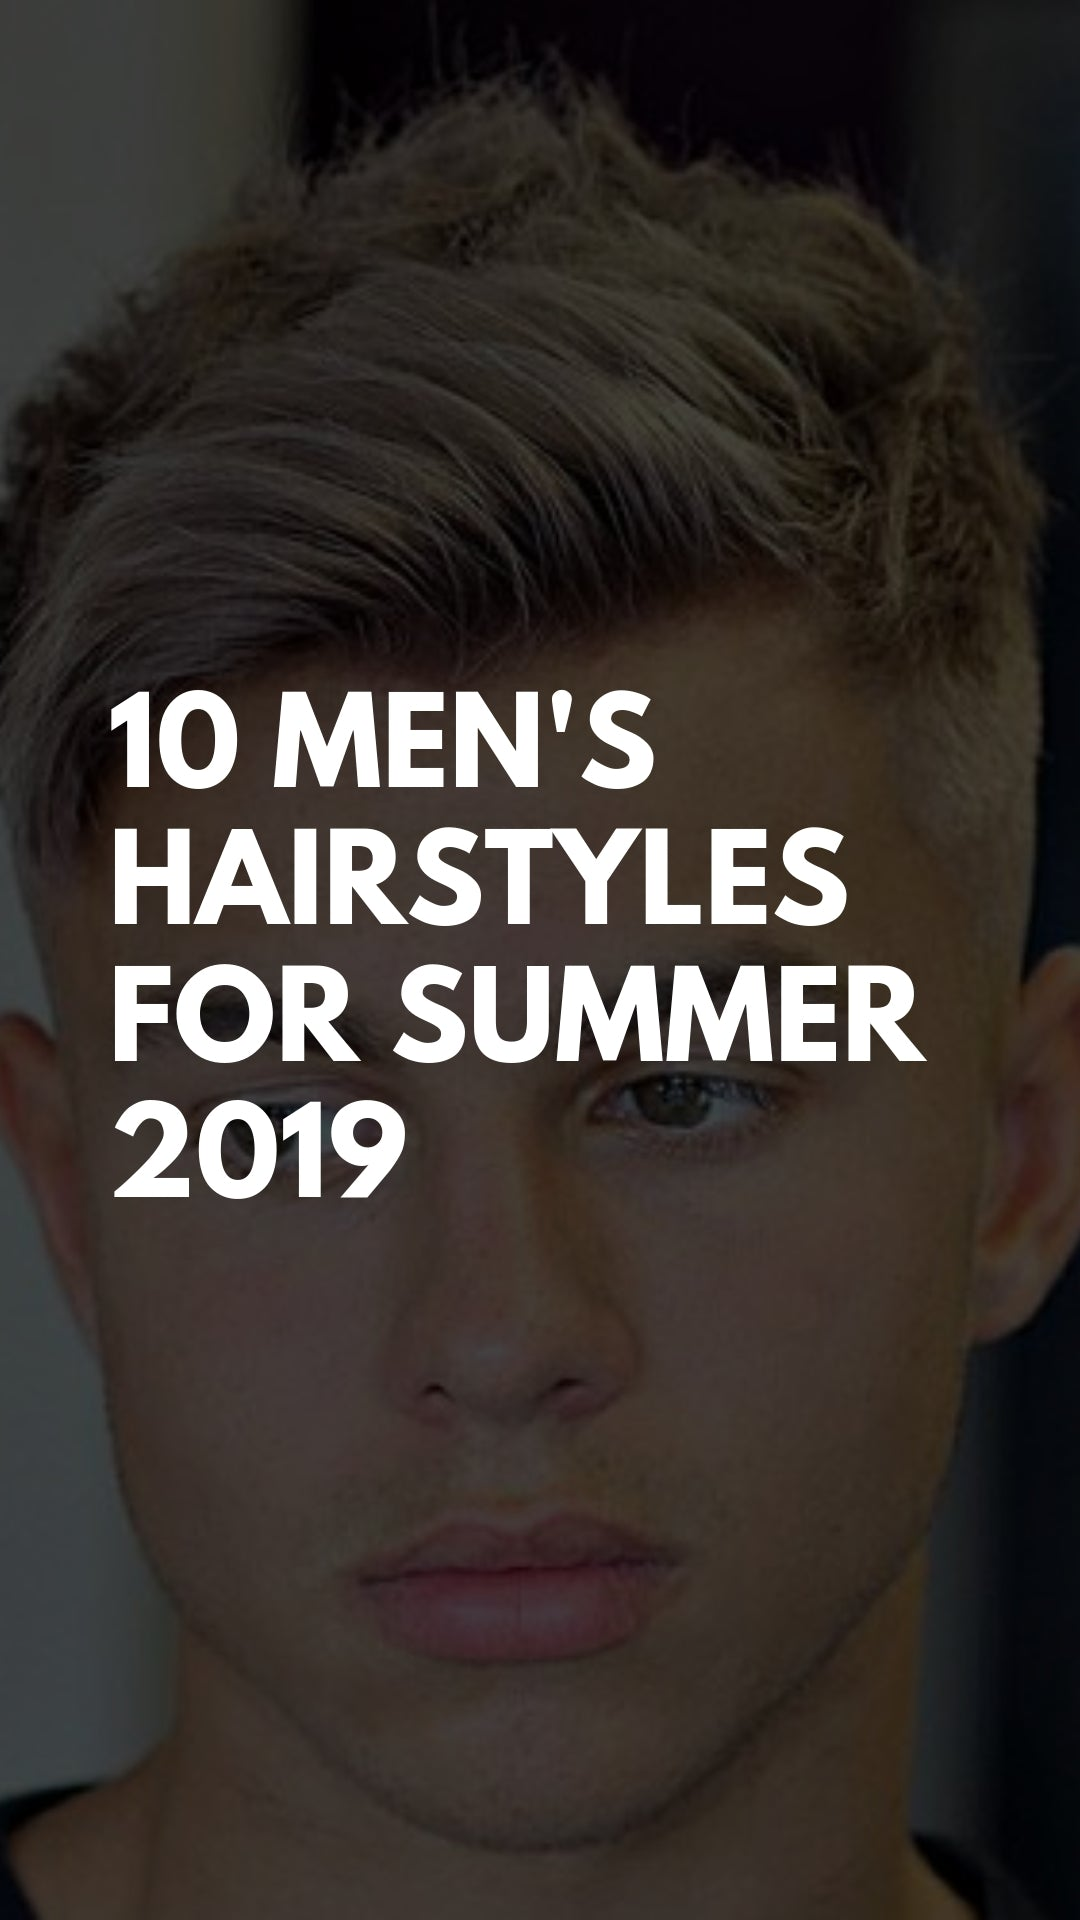 10 MEN'S HAIRSTYLES FOR SUMMER 2019